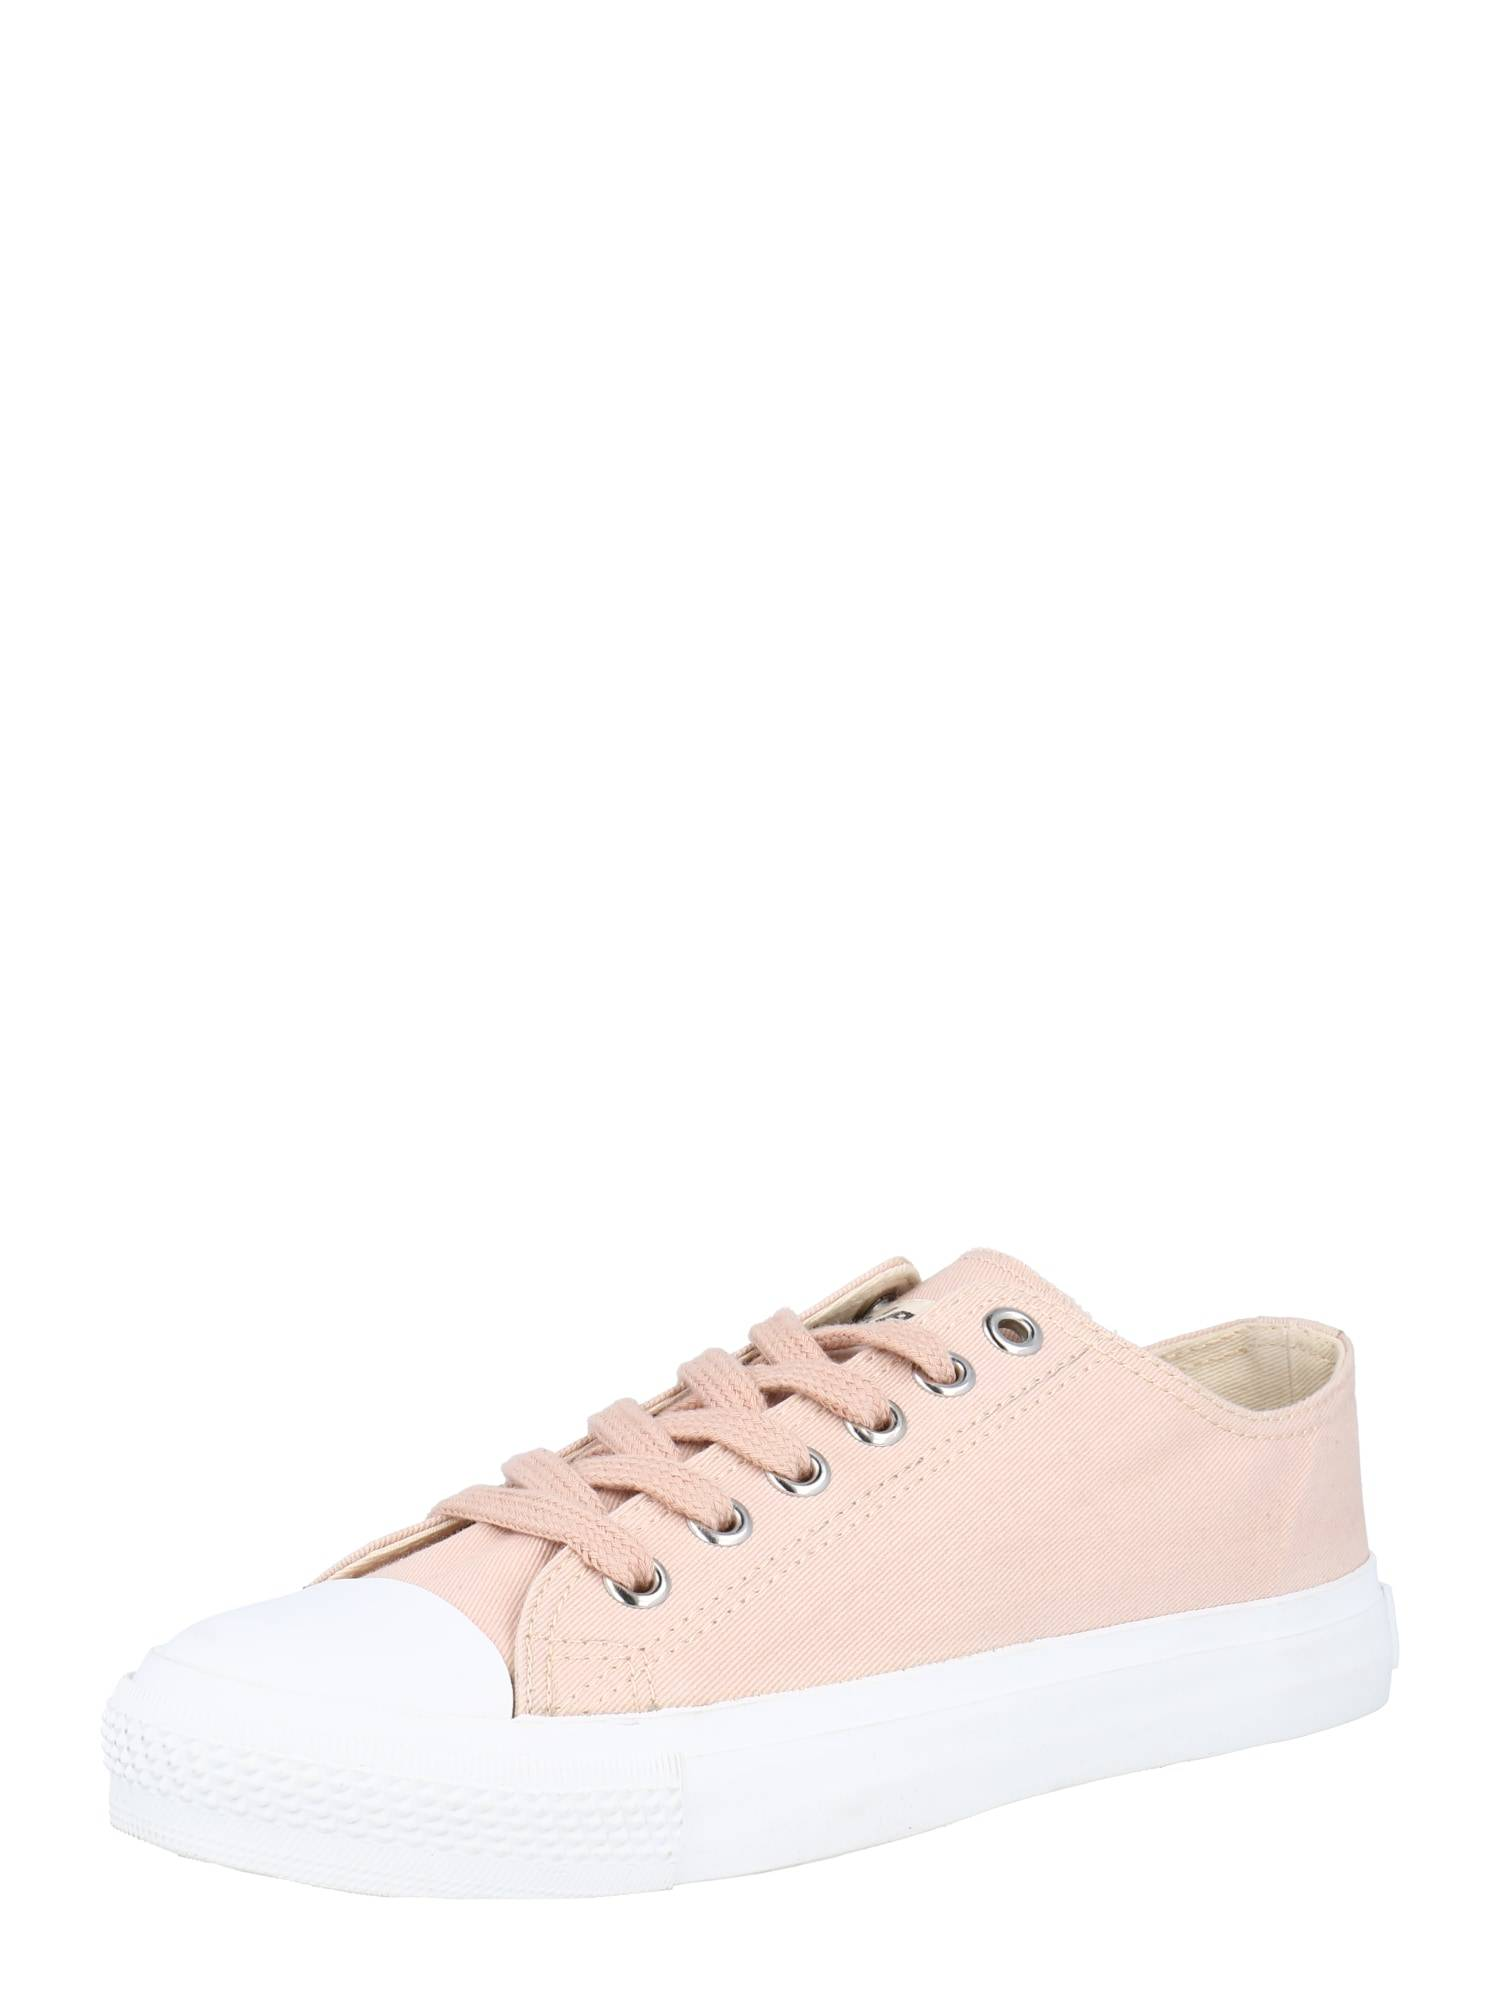 Ethletic Baskets basses 'Fair Trainer White Cap Low Cut'  - Rose - Taille: 40 - male